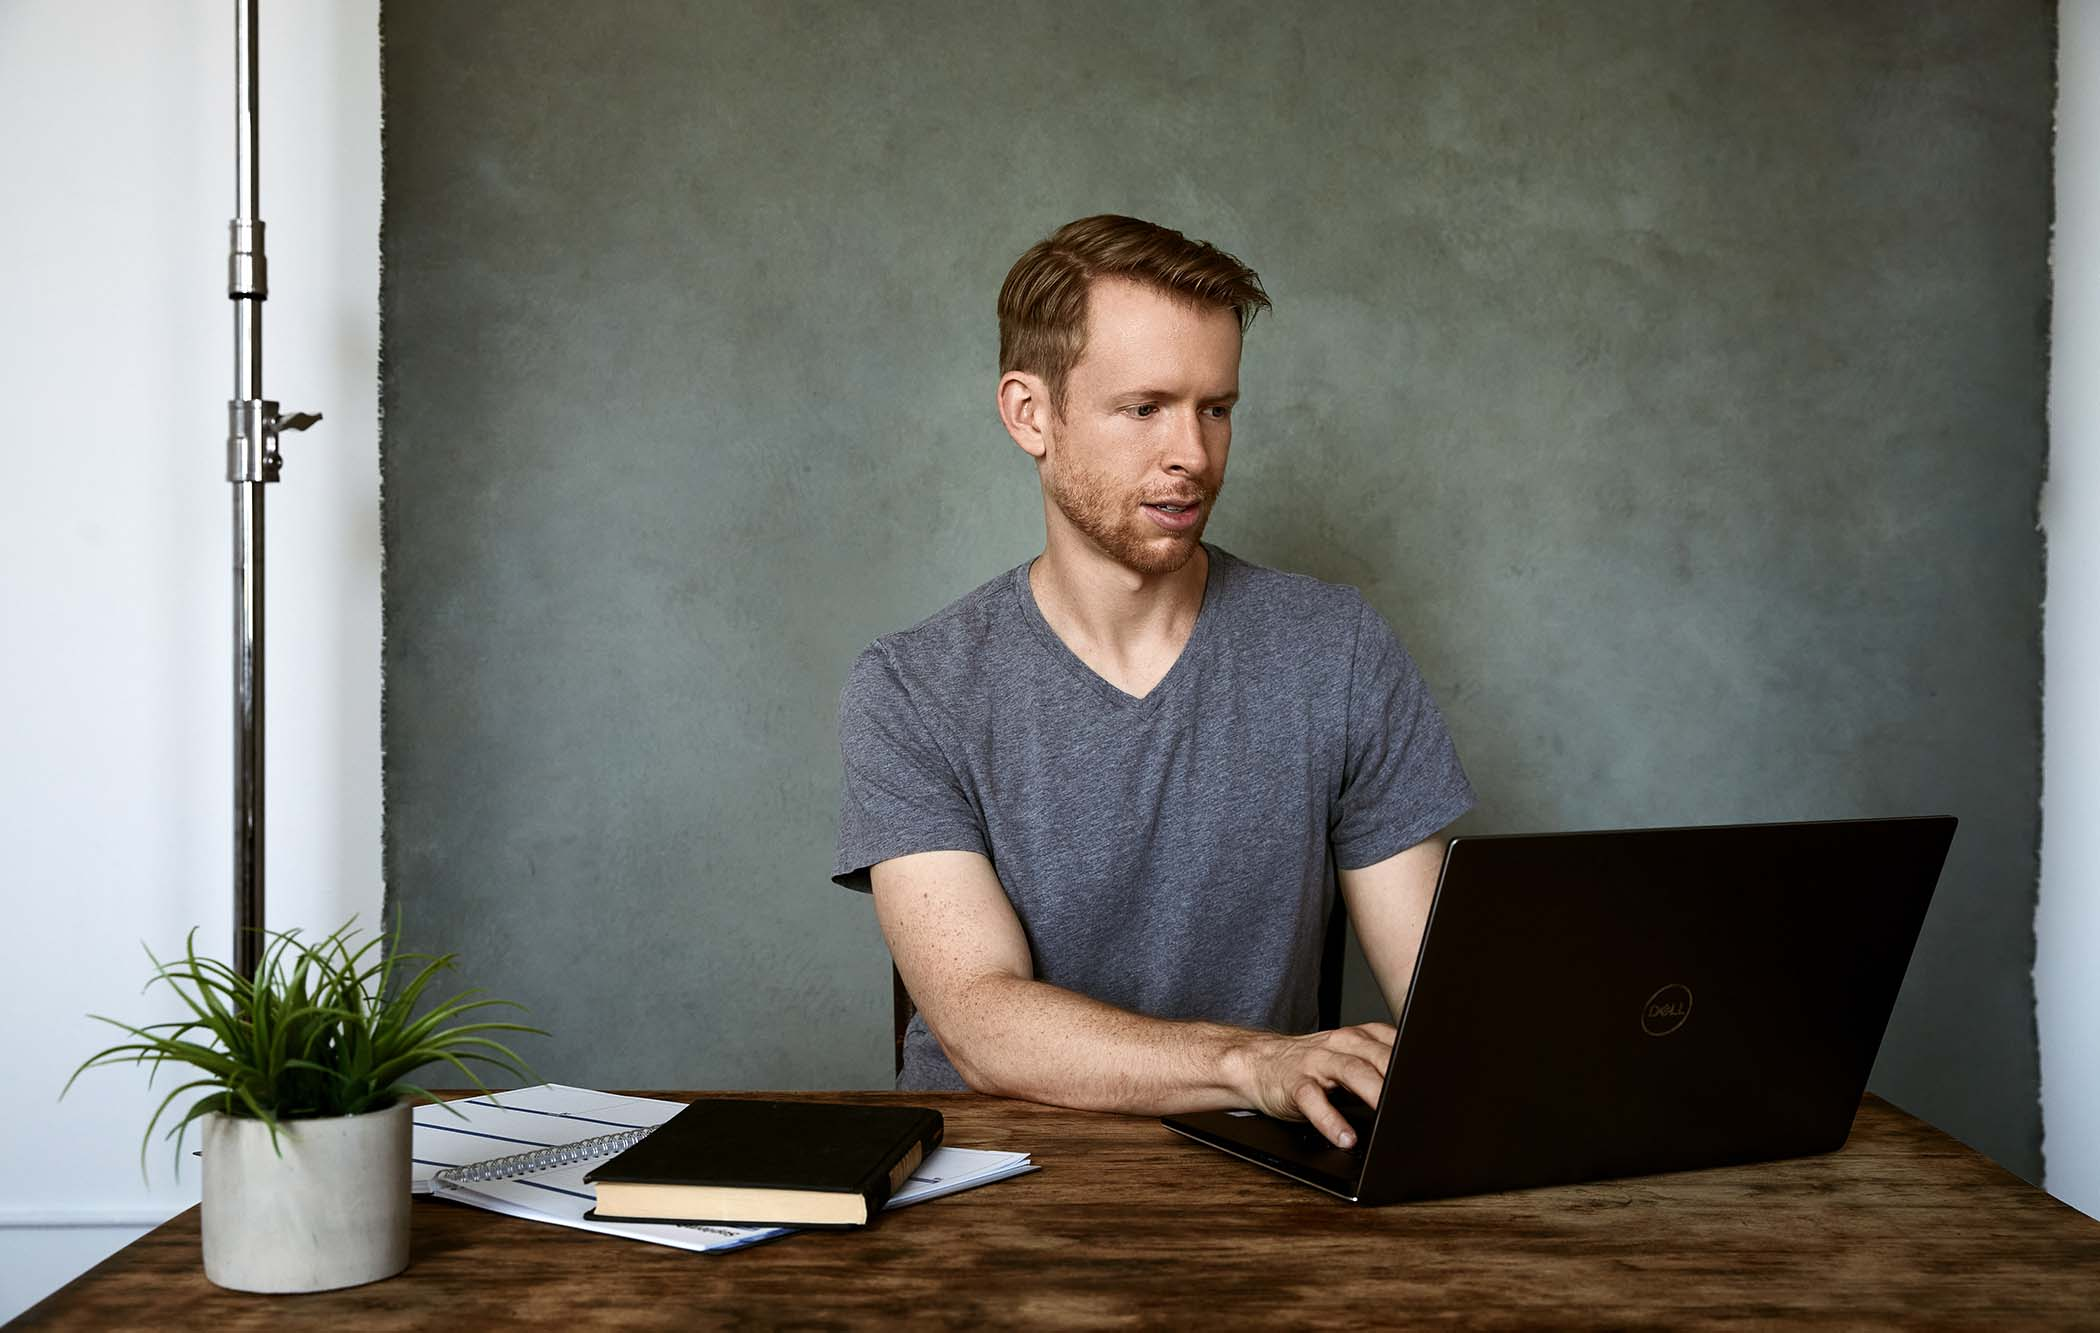 A man works on a computer at a desk.